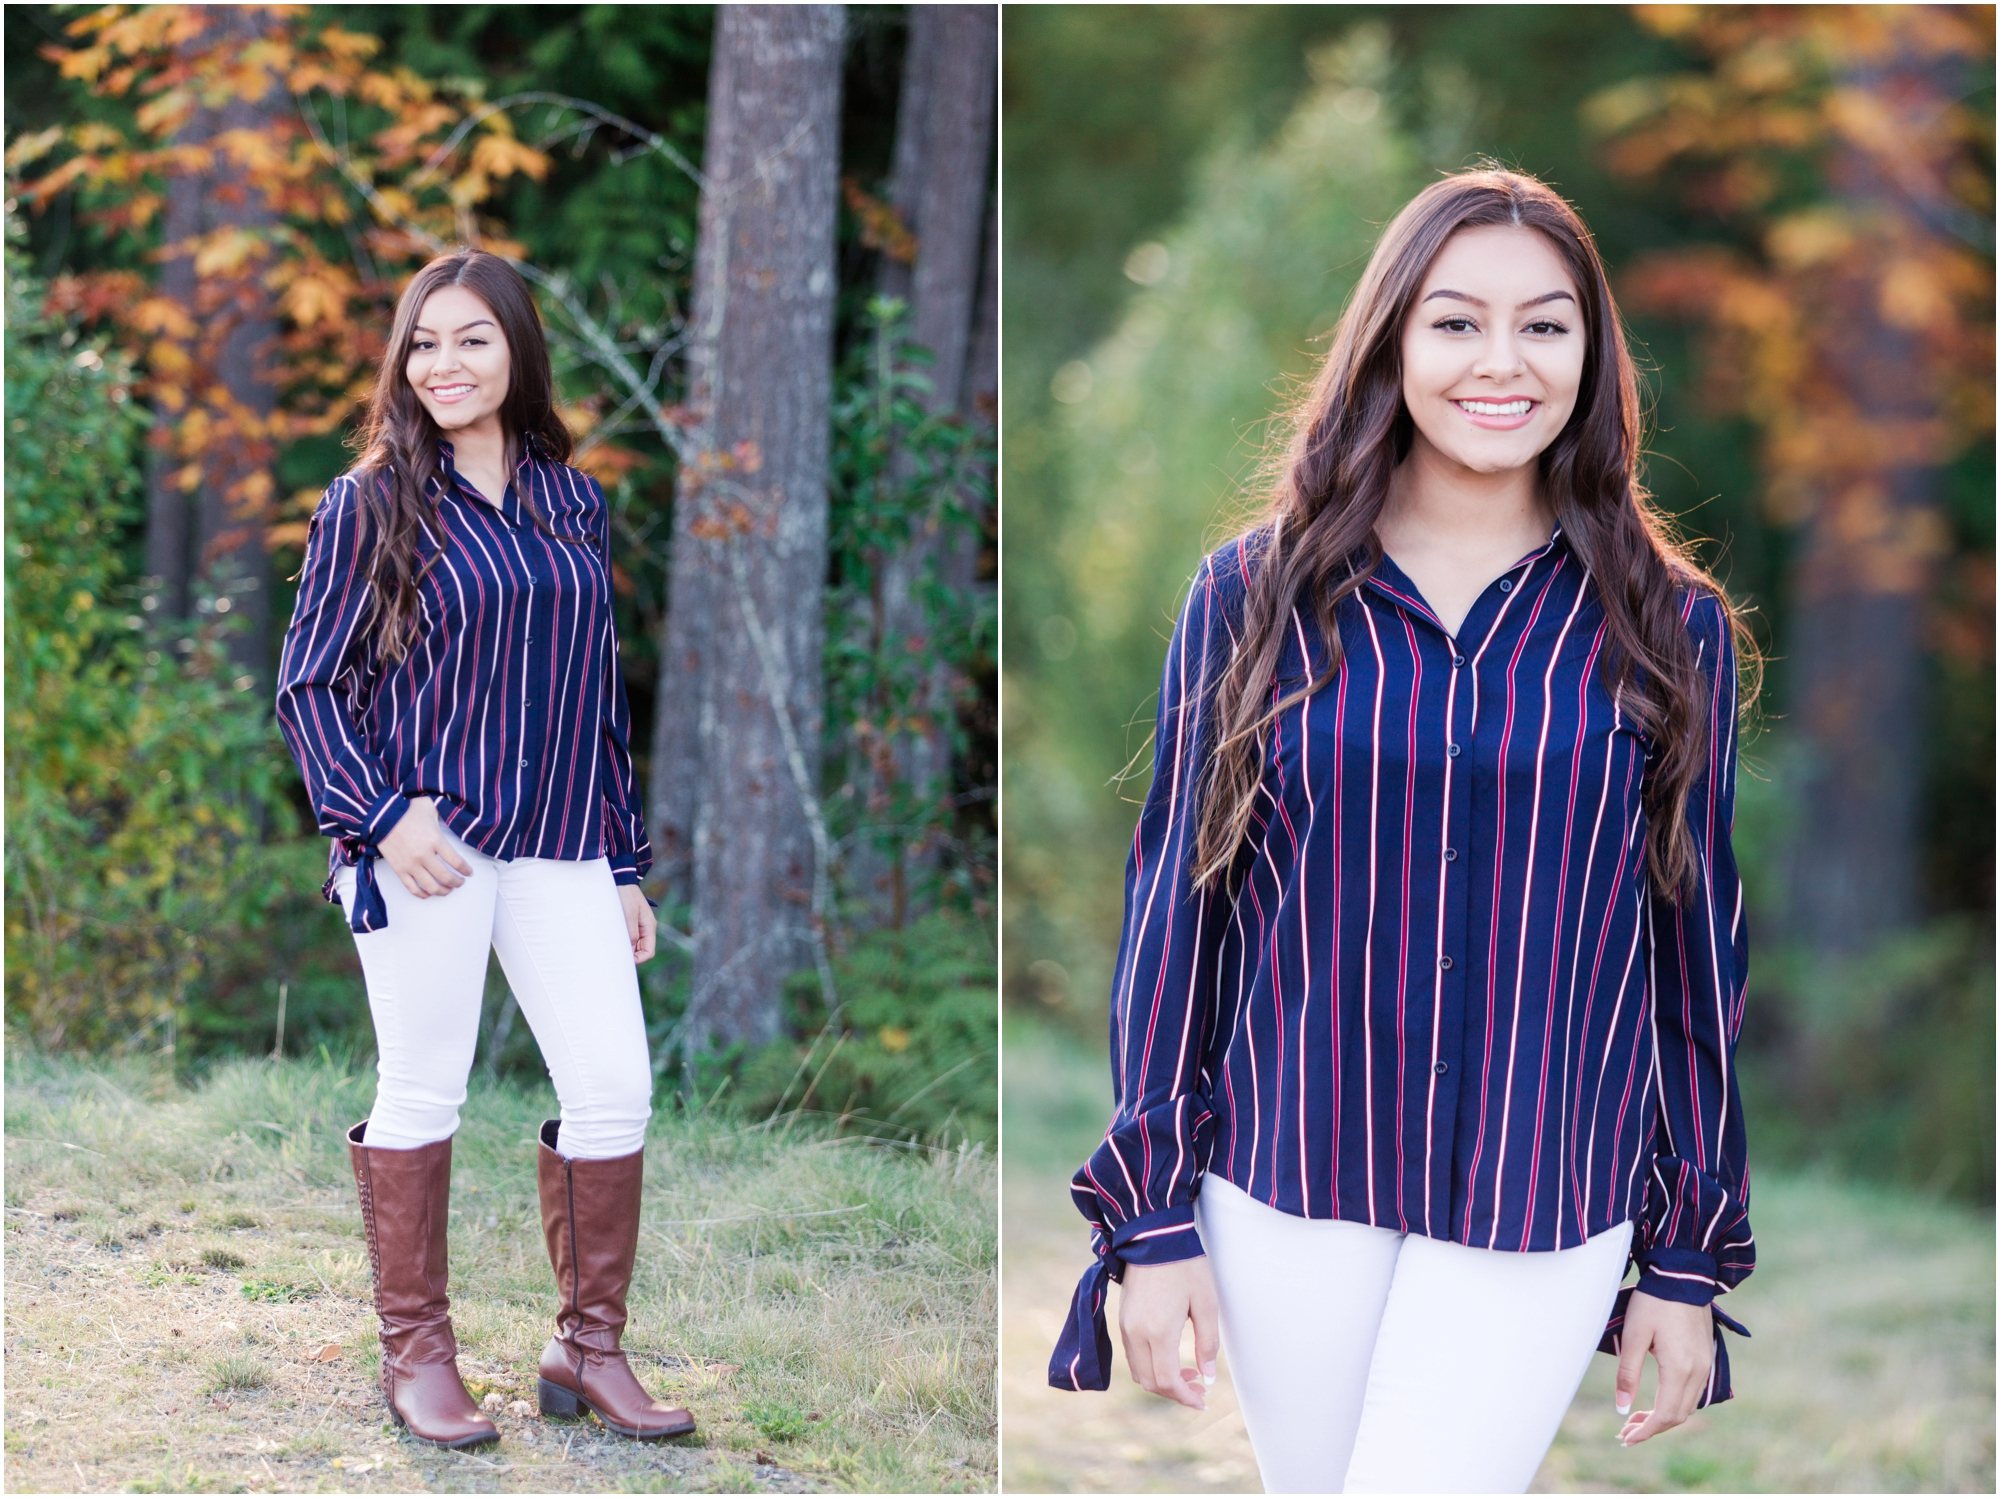 High School Senior portriats by Briana Calderon Photography based in the Greater Seattle & Tacoma, WA_0936.jpg